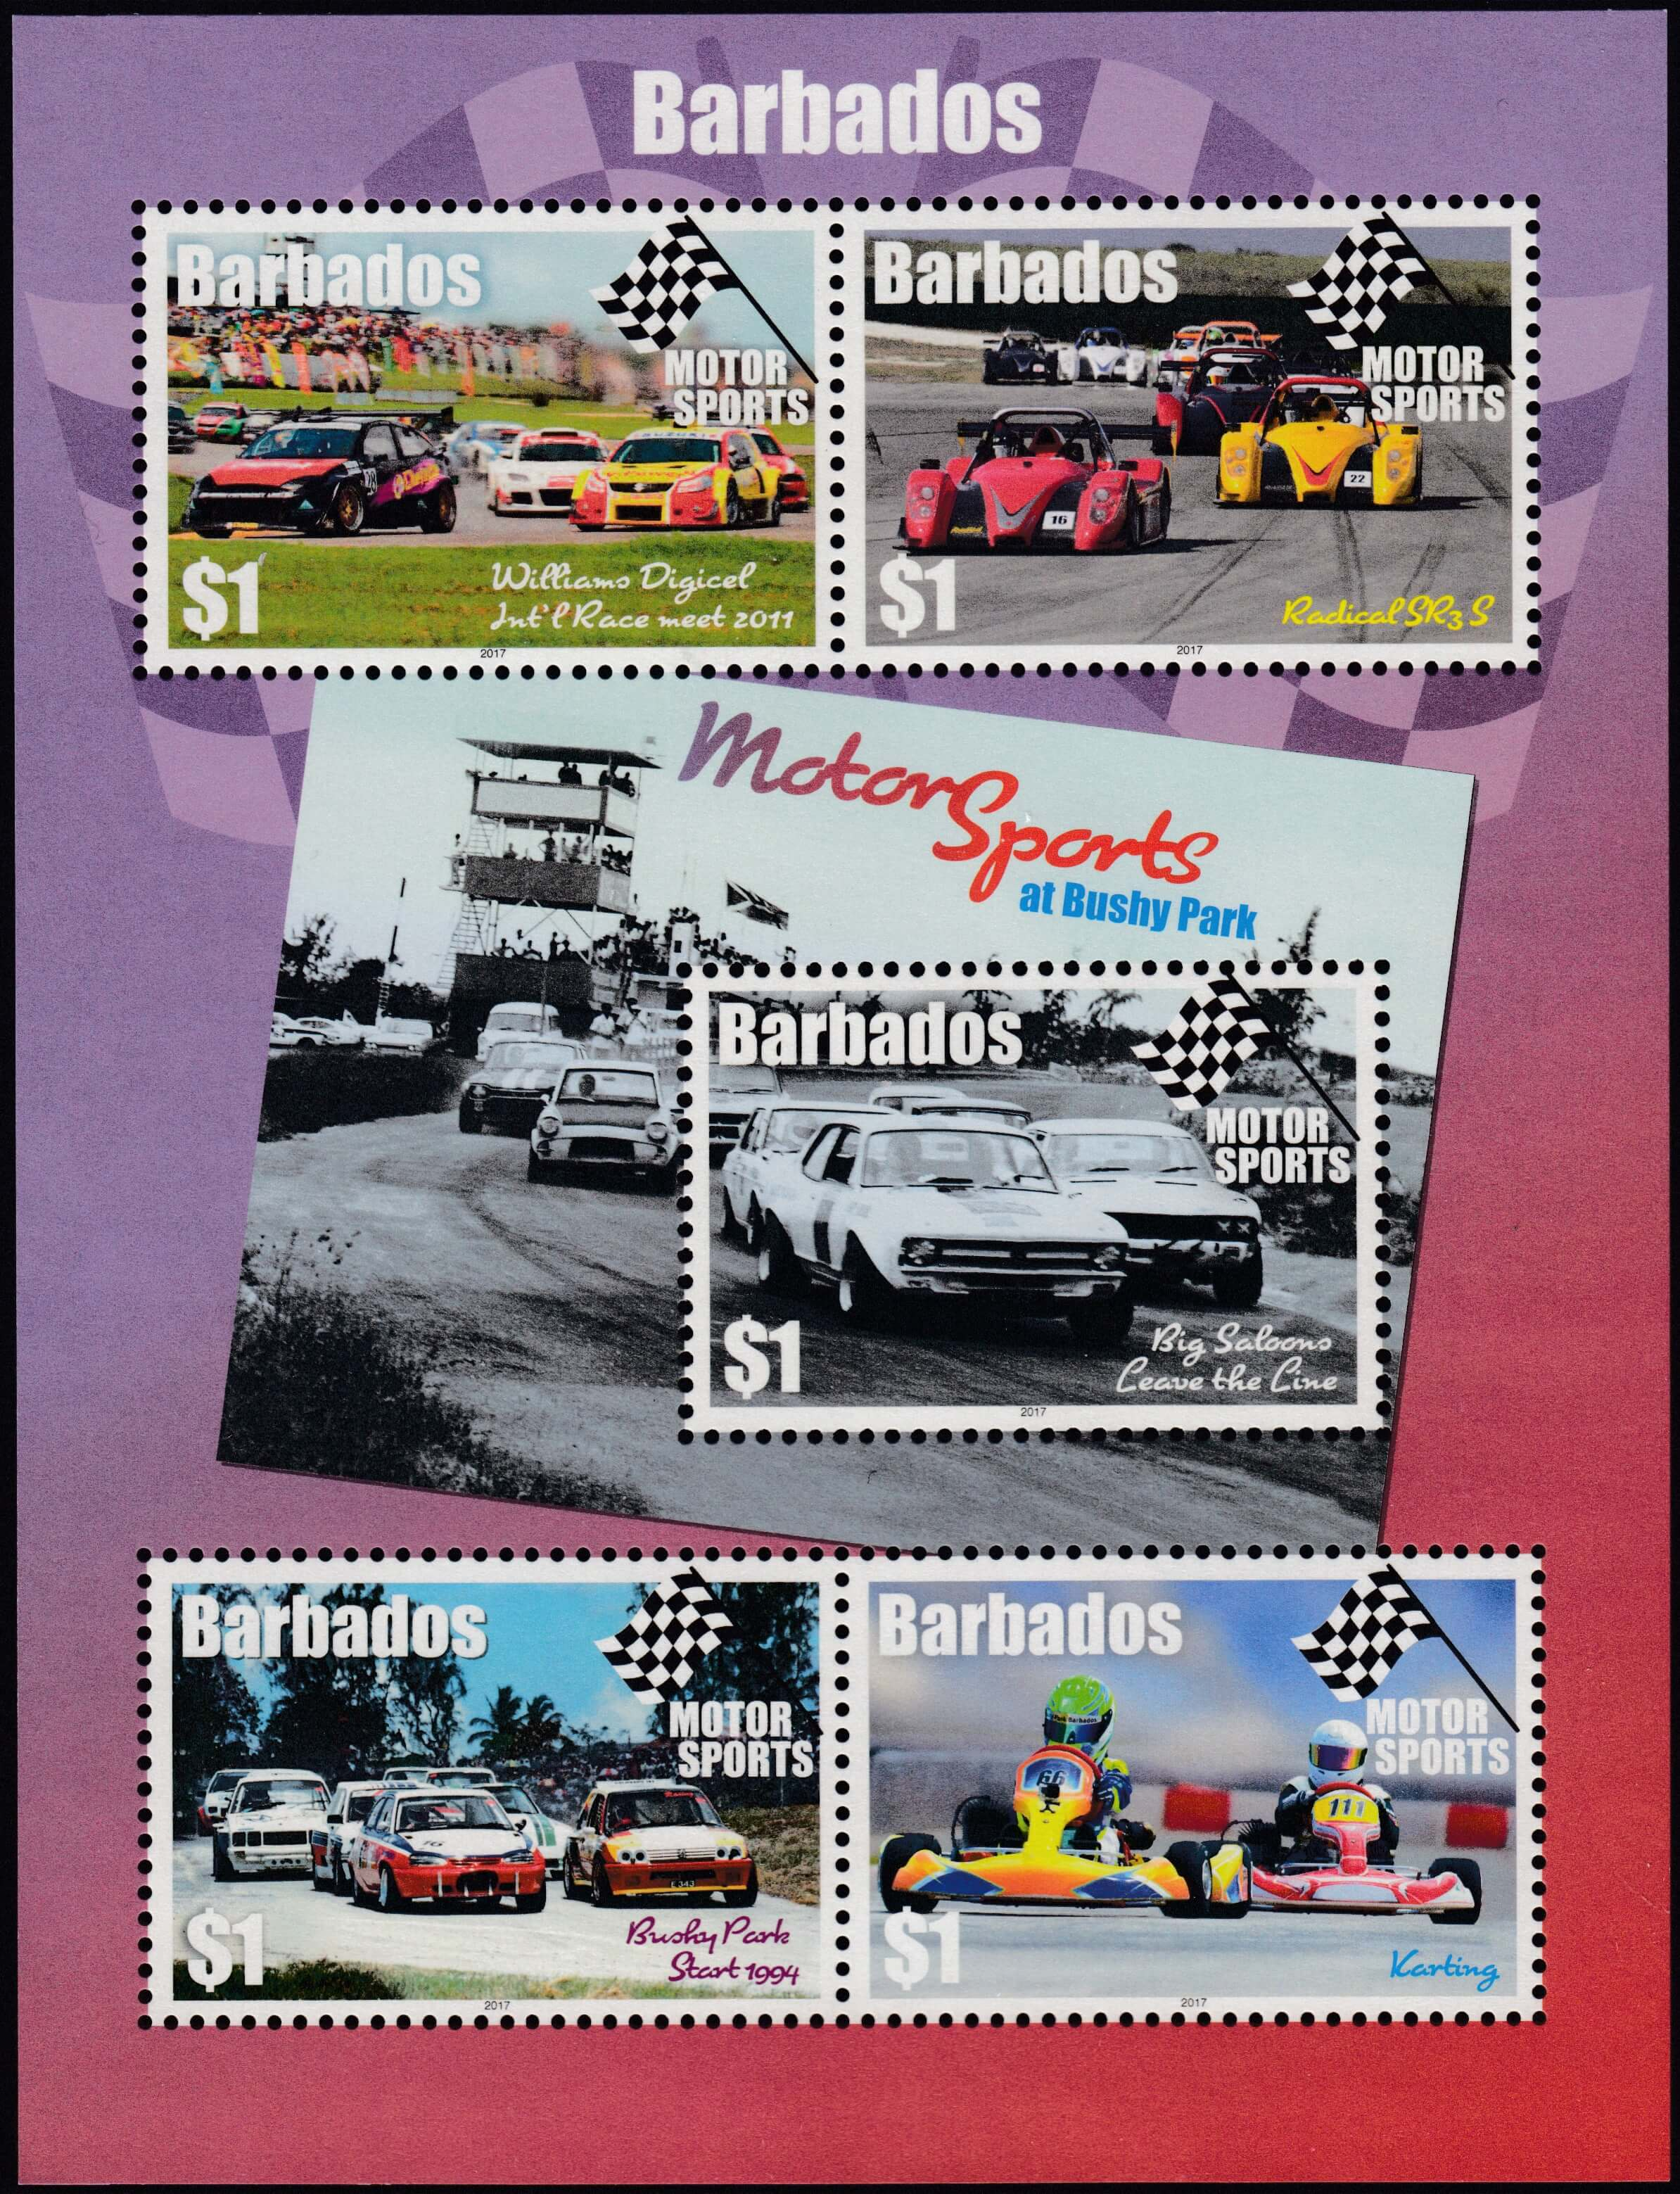 Barbados Motor Sport Mini Sheet - Bushey Park Barbados